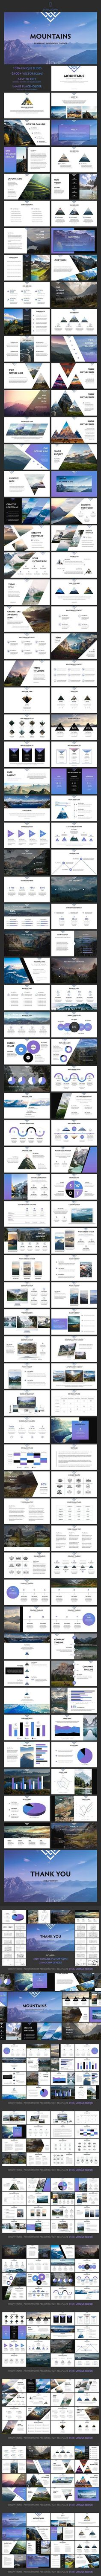 Mountains - Powerpoint Template . PowerPoint Templates